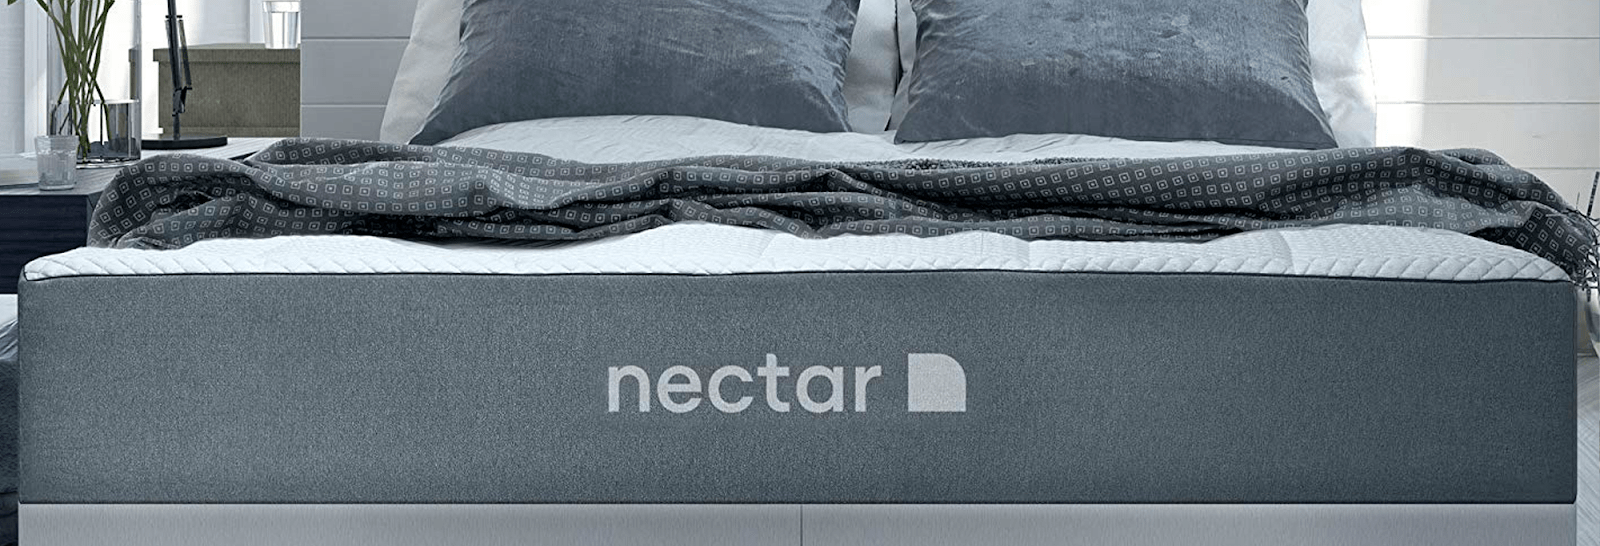 nectar mattress showrooms in nyc